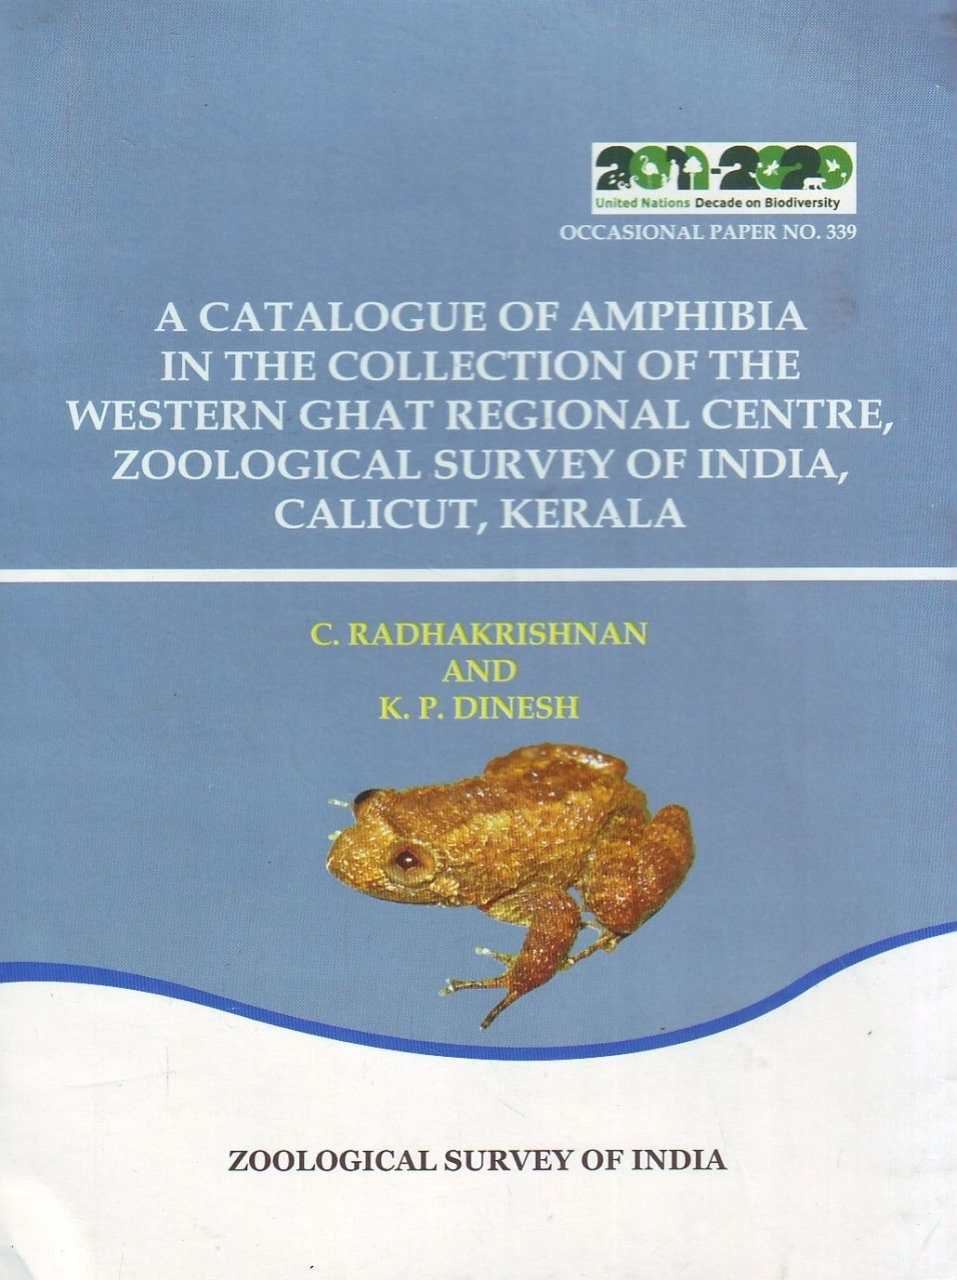 A Catalogue of Amphibia in the Collection of the Western Ghat Regional Centre Zoological Survey of India Calicut Kerala